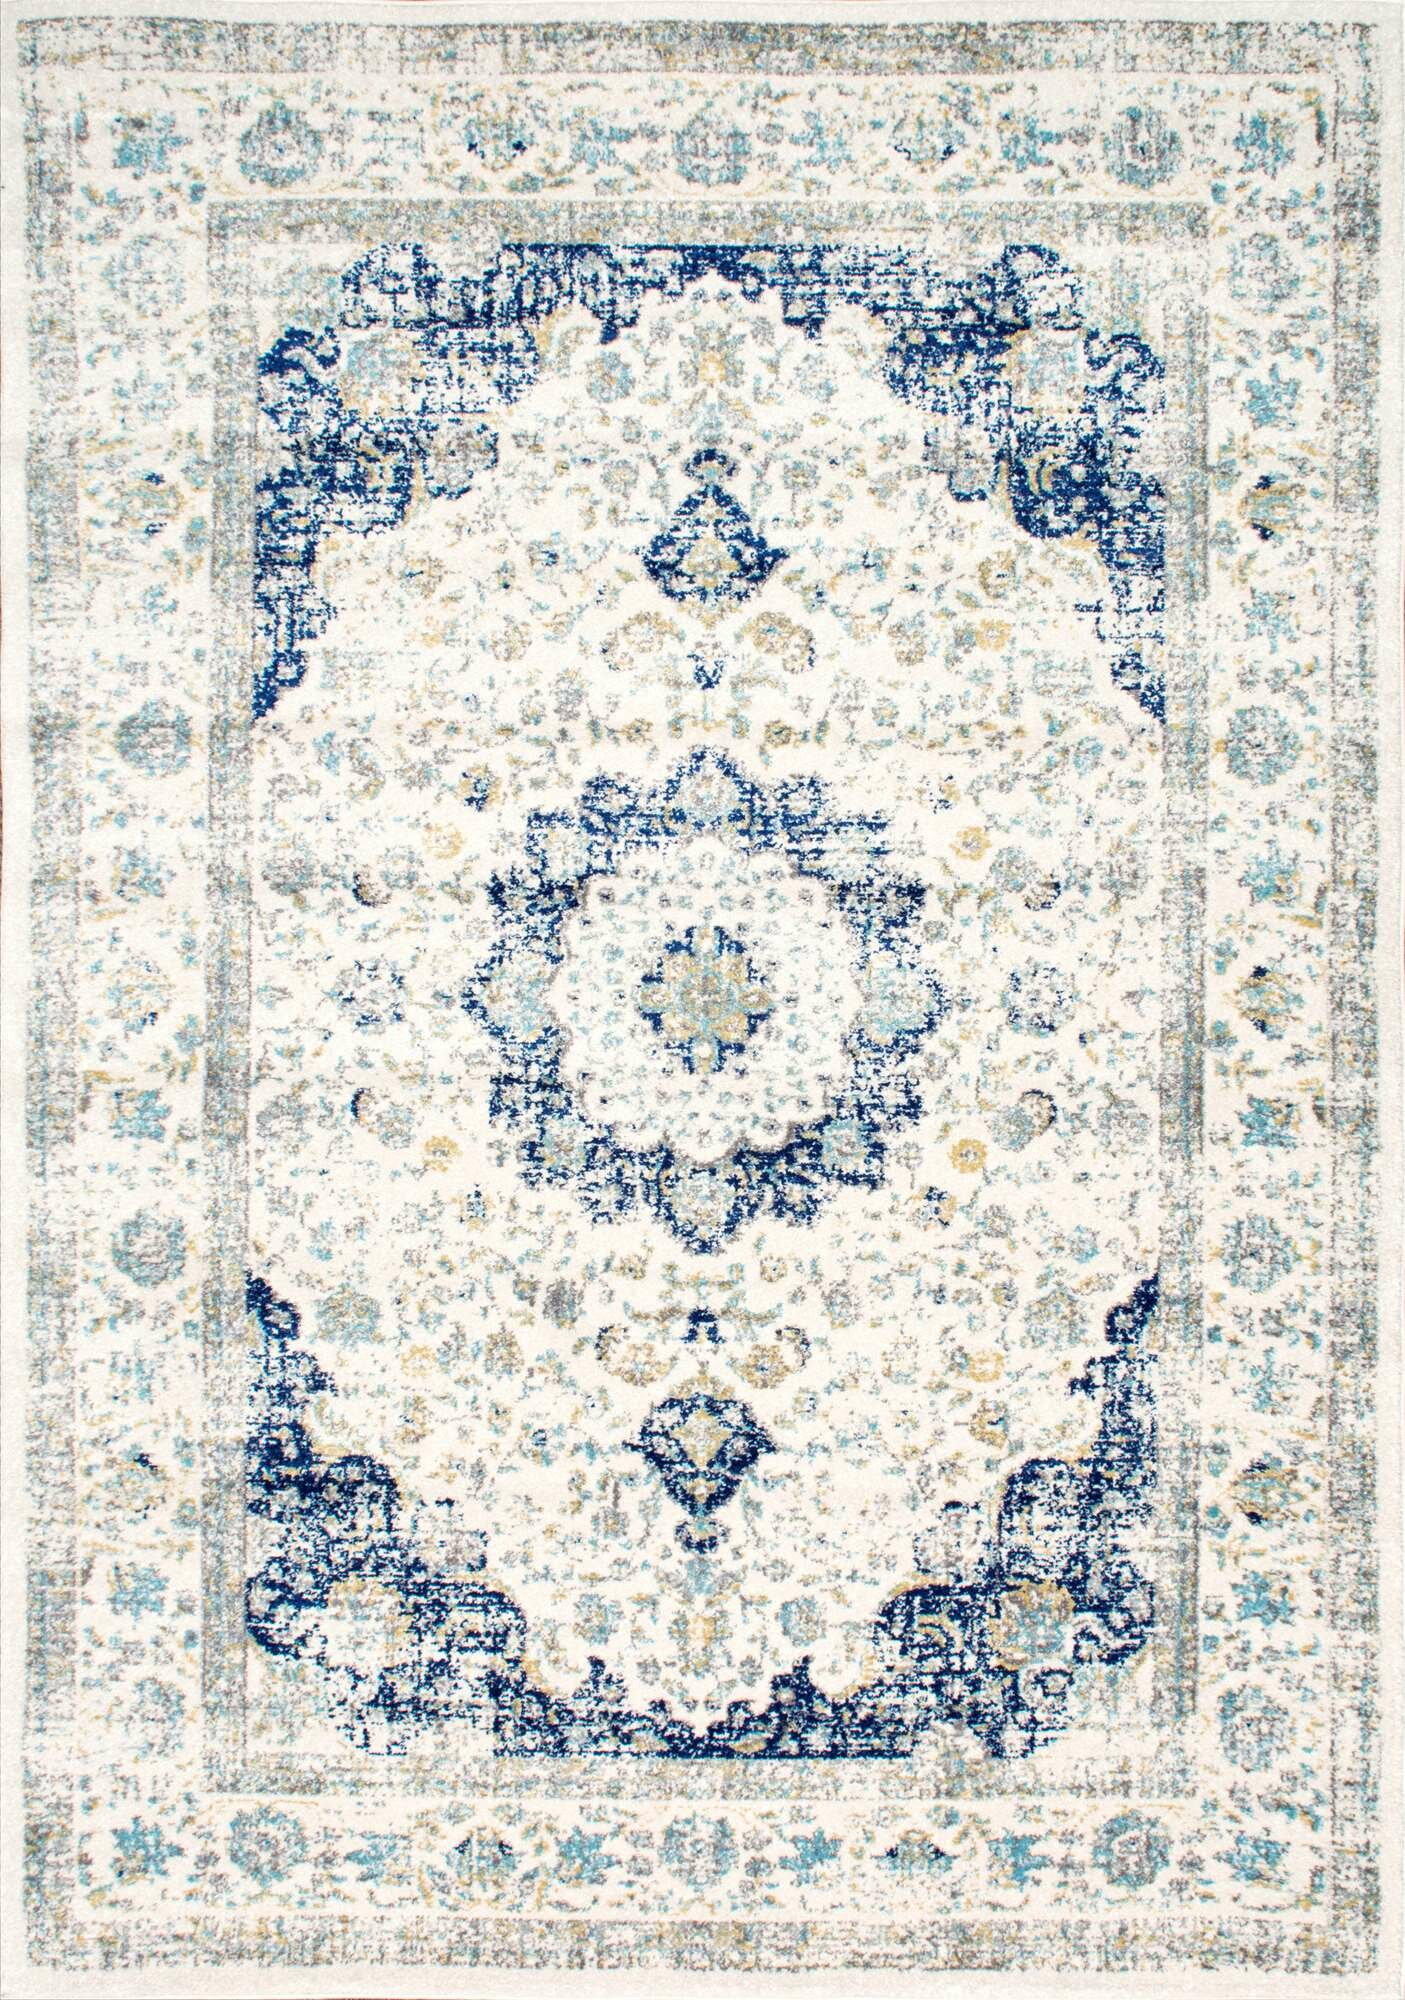 ivoryblue blue pdp reviews main fiora joss ivory rug rugs area